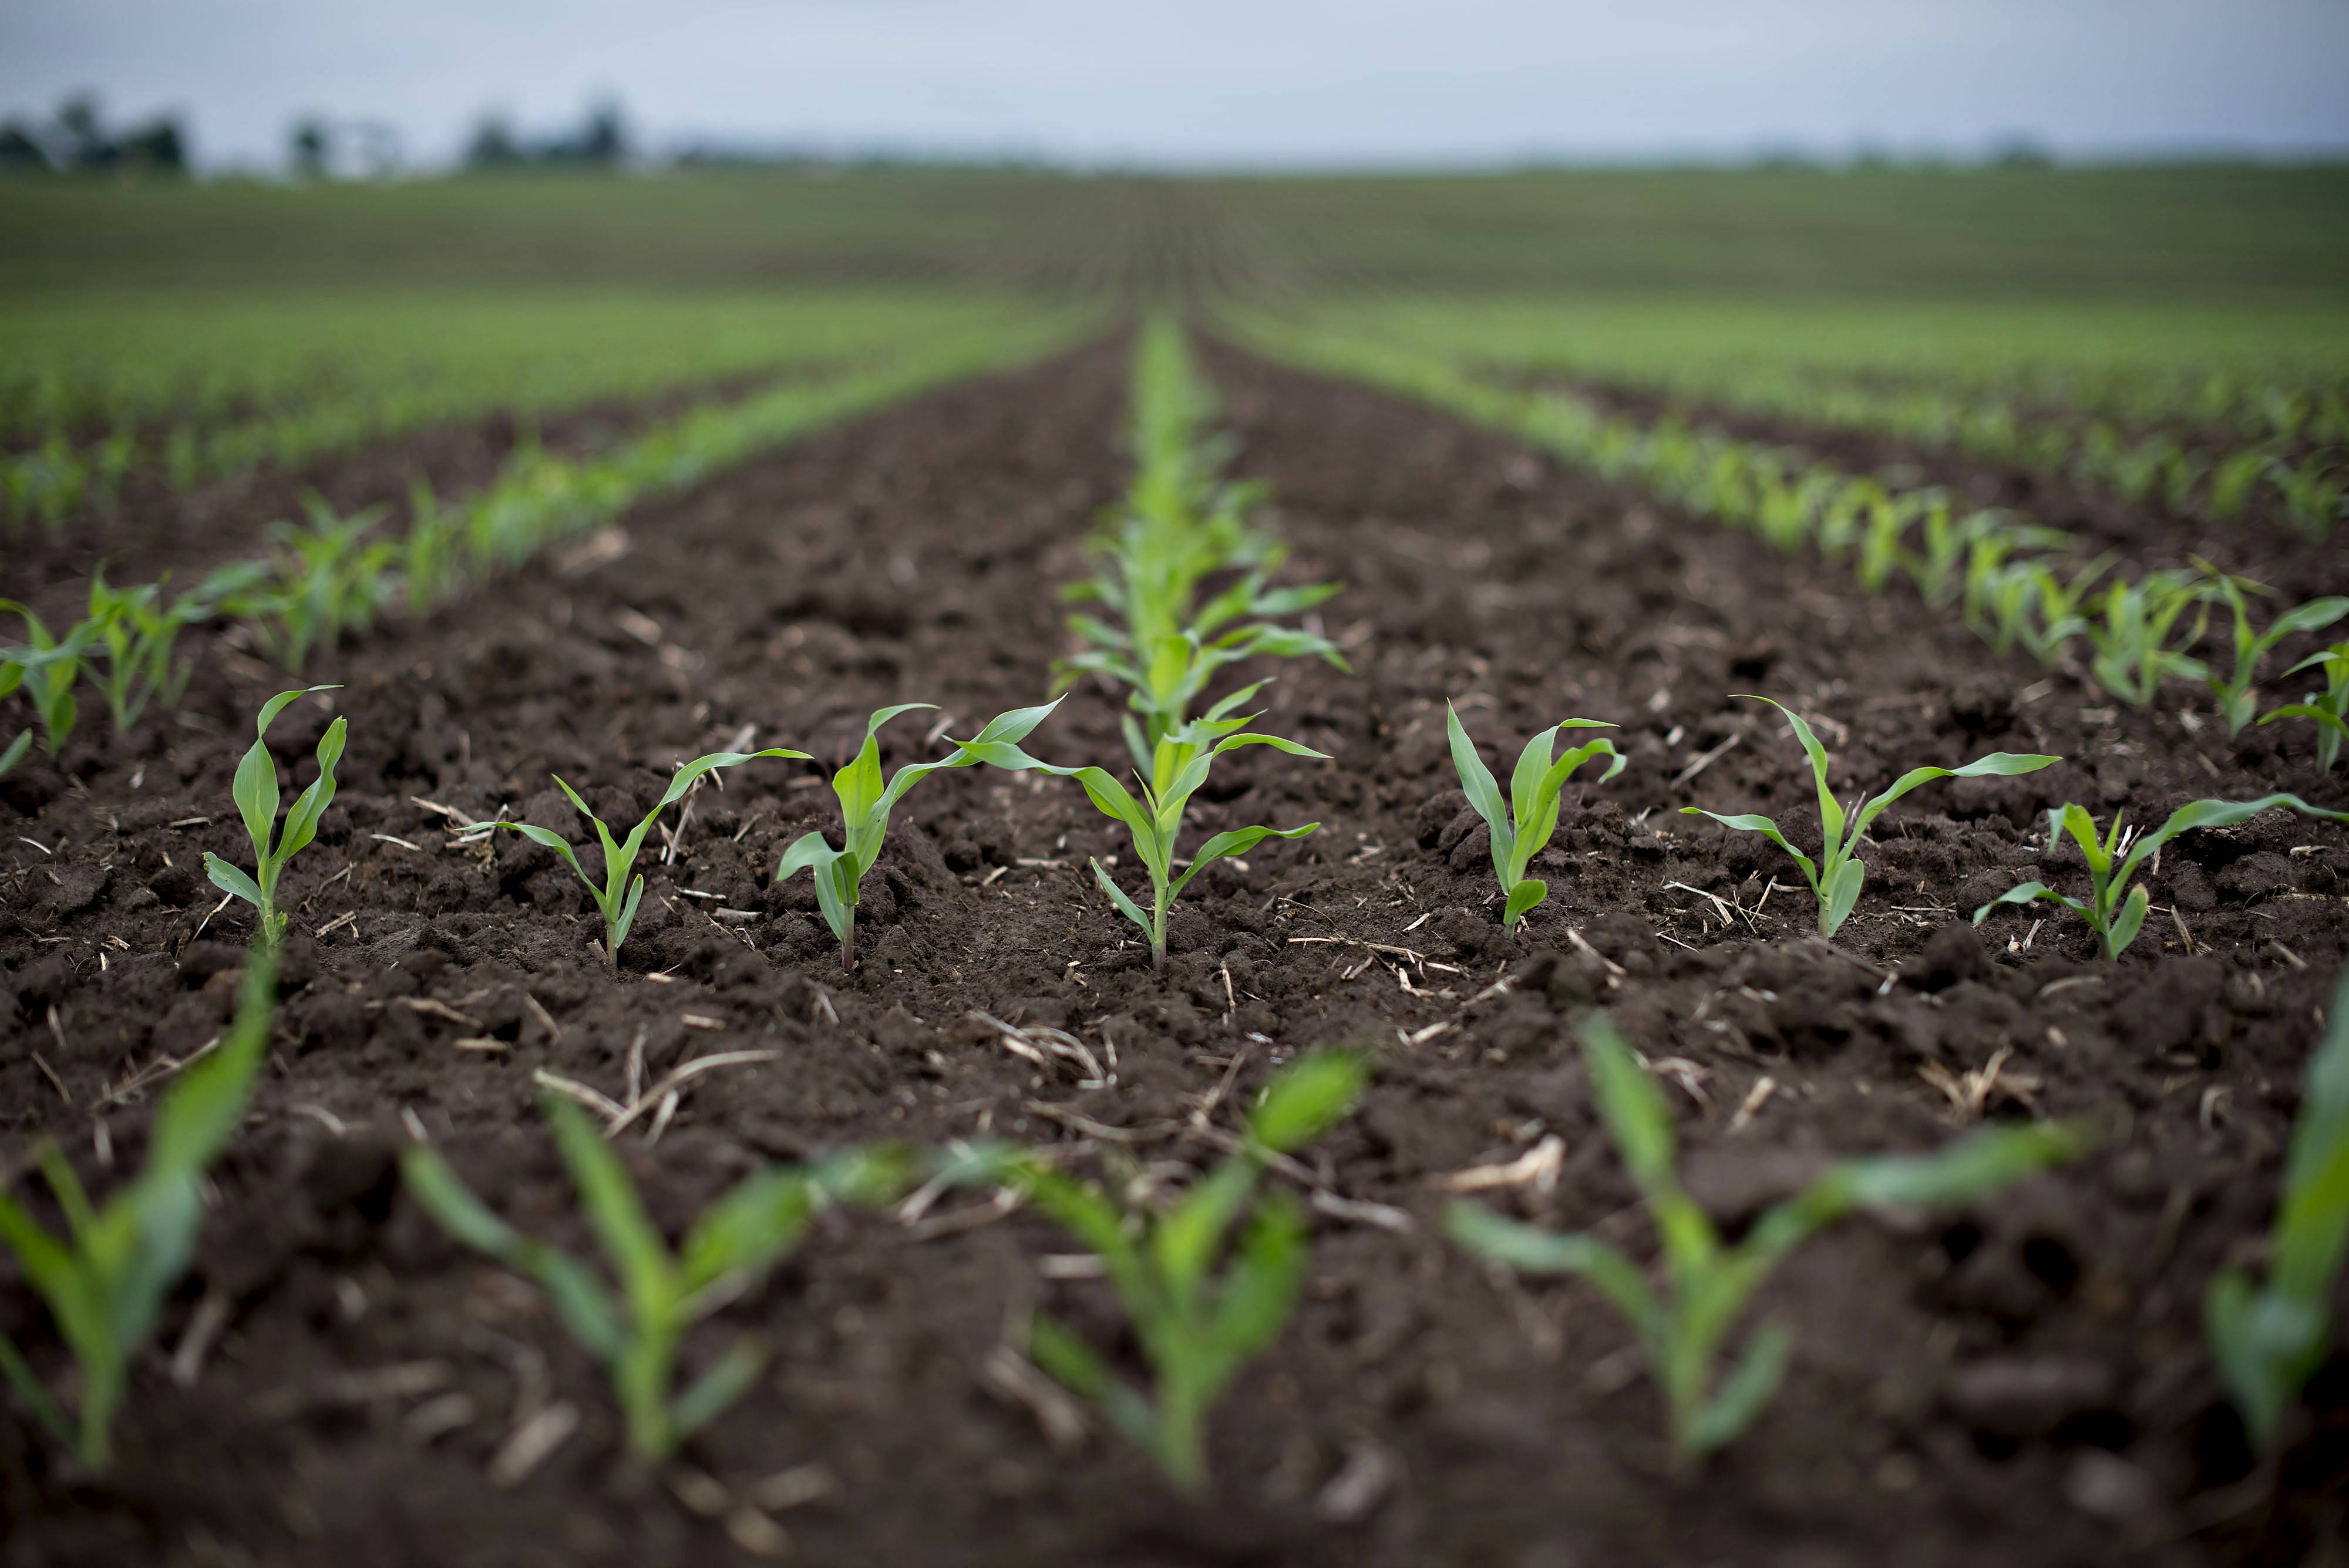 Corn grows in a field near DePue, Illinois, U.S., on Wednesday, June 4, 2014. The nation's wheat crop is smaller than earlier was predicted due to drought, but corn and soybean crop expectations have changed little in the last month, the U.S. Department of Agriculture said Wednesday.